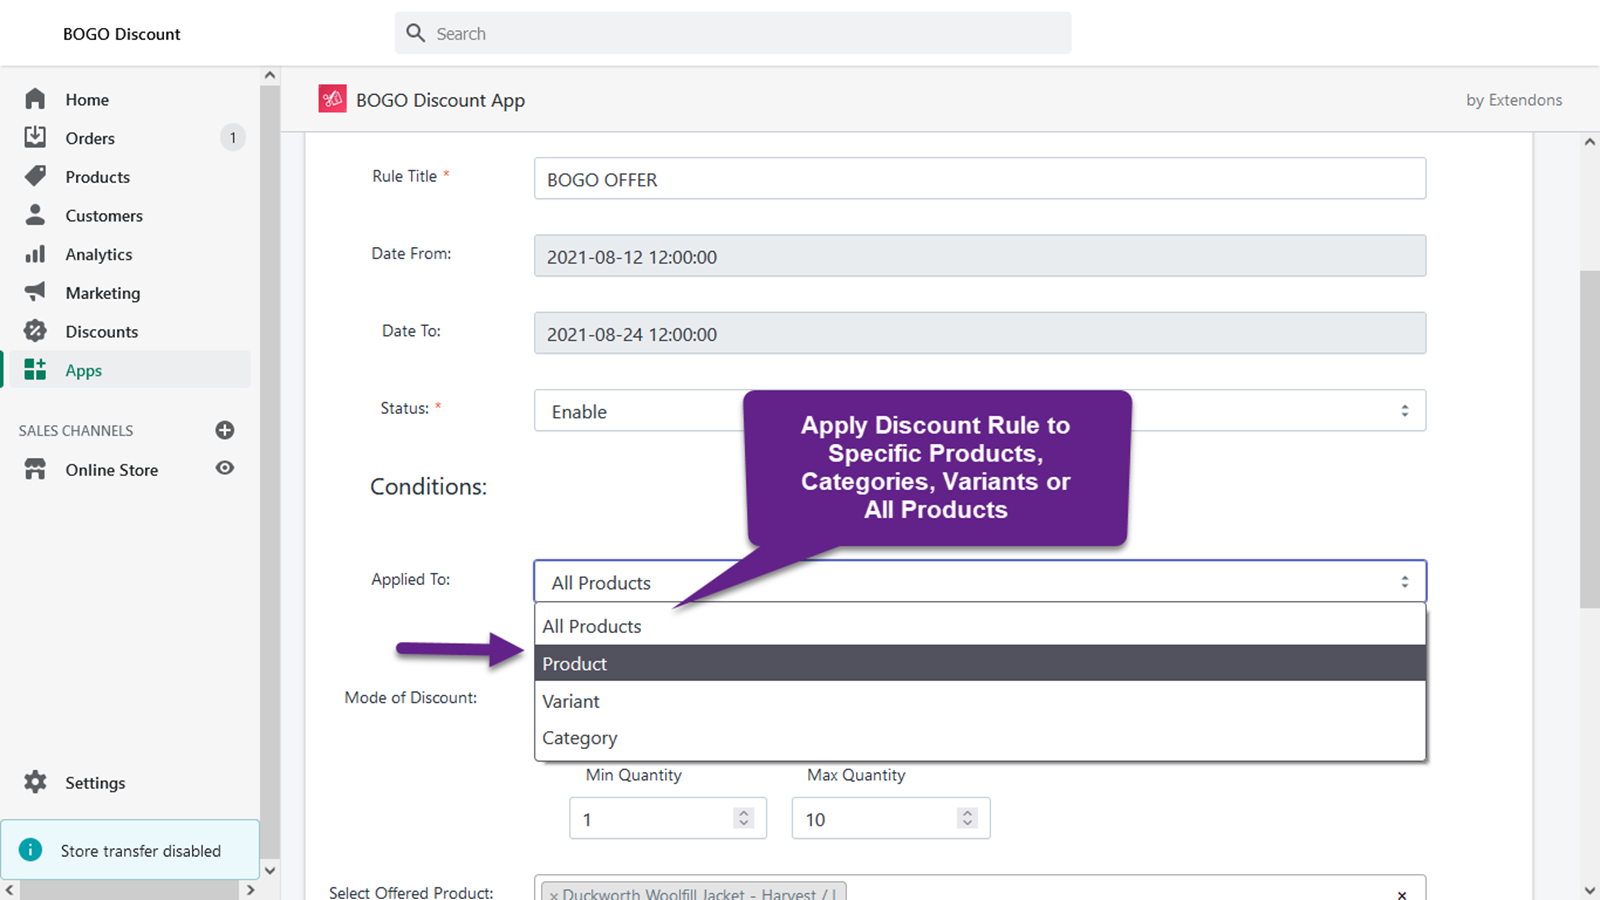 Apply Discount Rule to Specific Products, Categories, & more